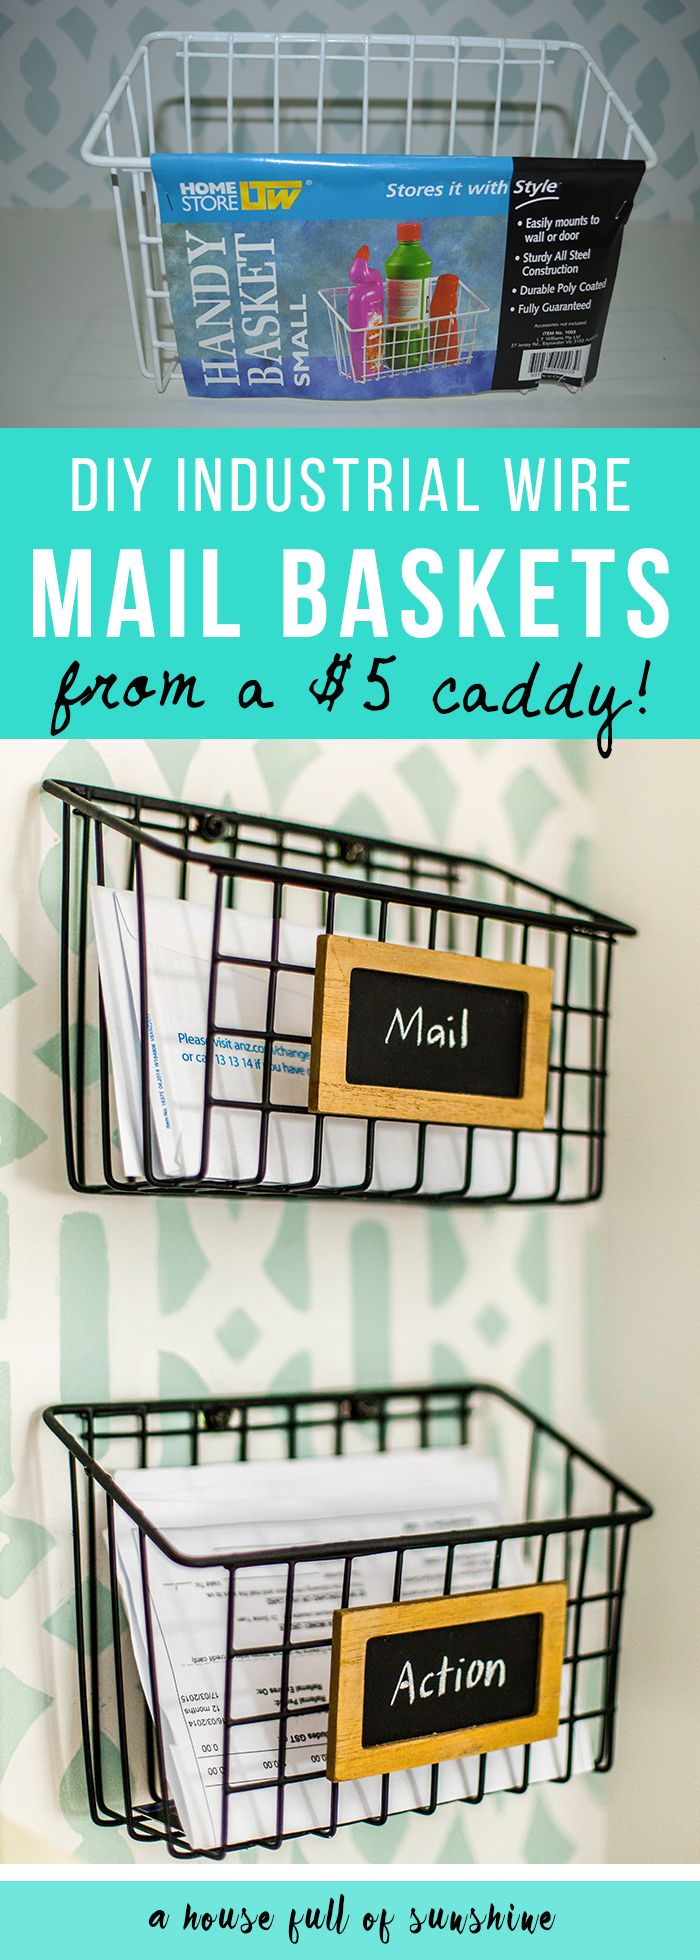 Wow! DIY Industrial wire mail baskets from a $5 cleaning caddy ...